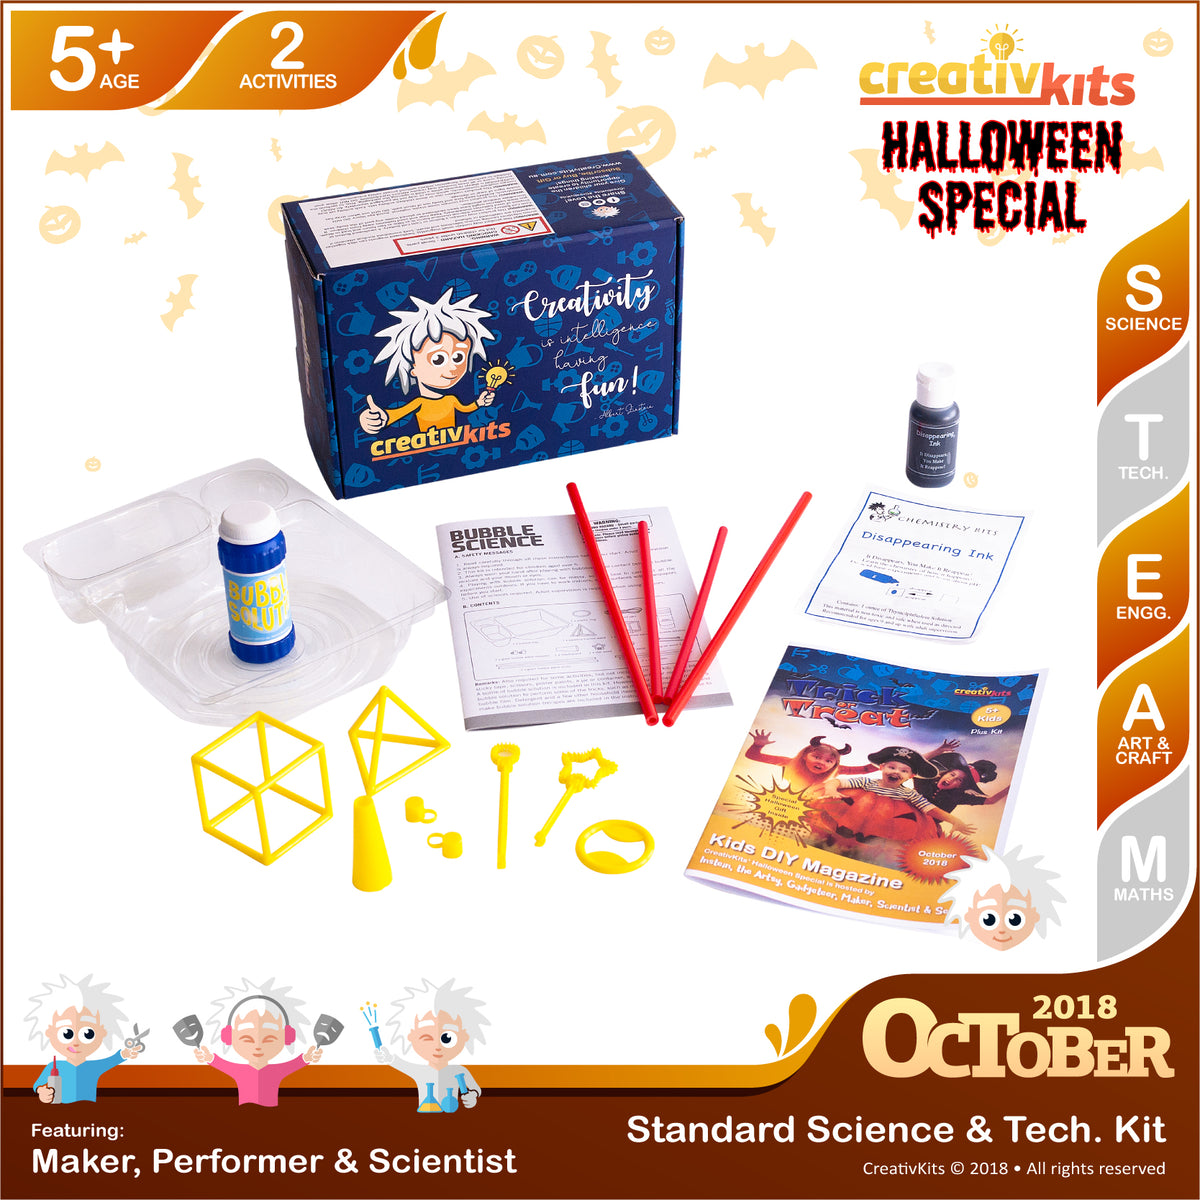 Learn Bubble Science & Spy using Disappearing Ink | October Standard Science & Tech. Kit | Age 5+